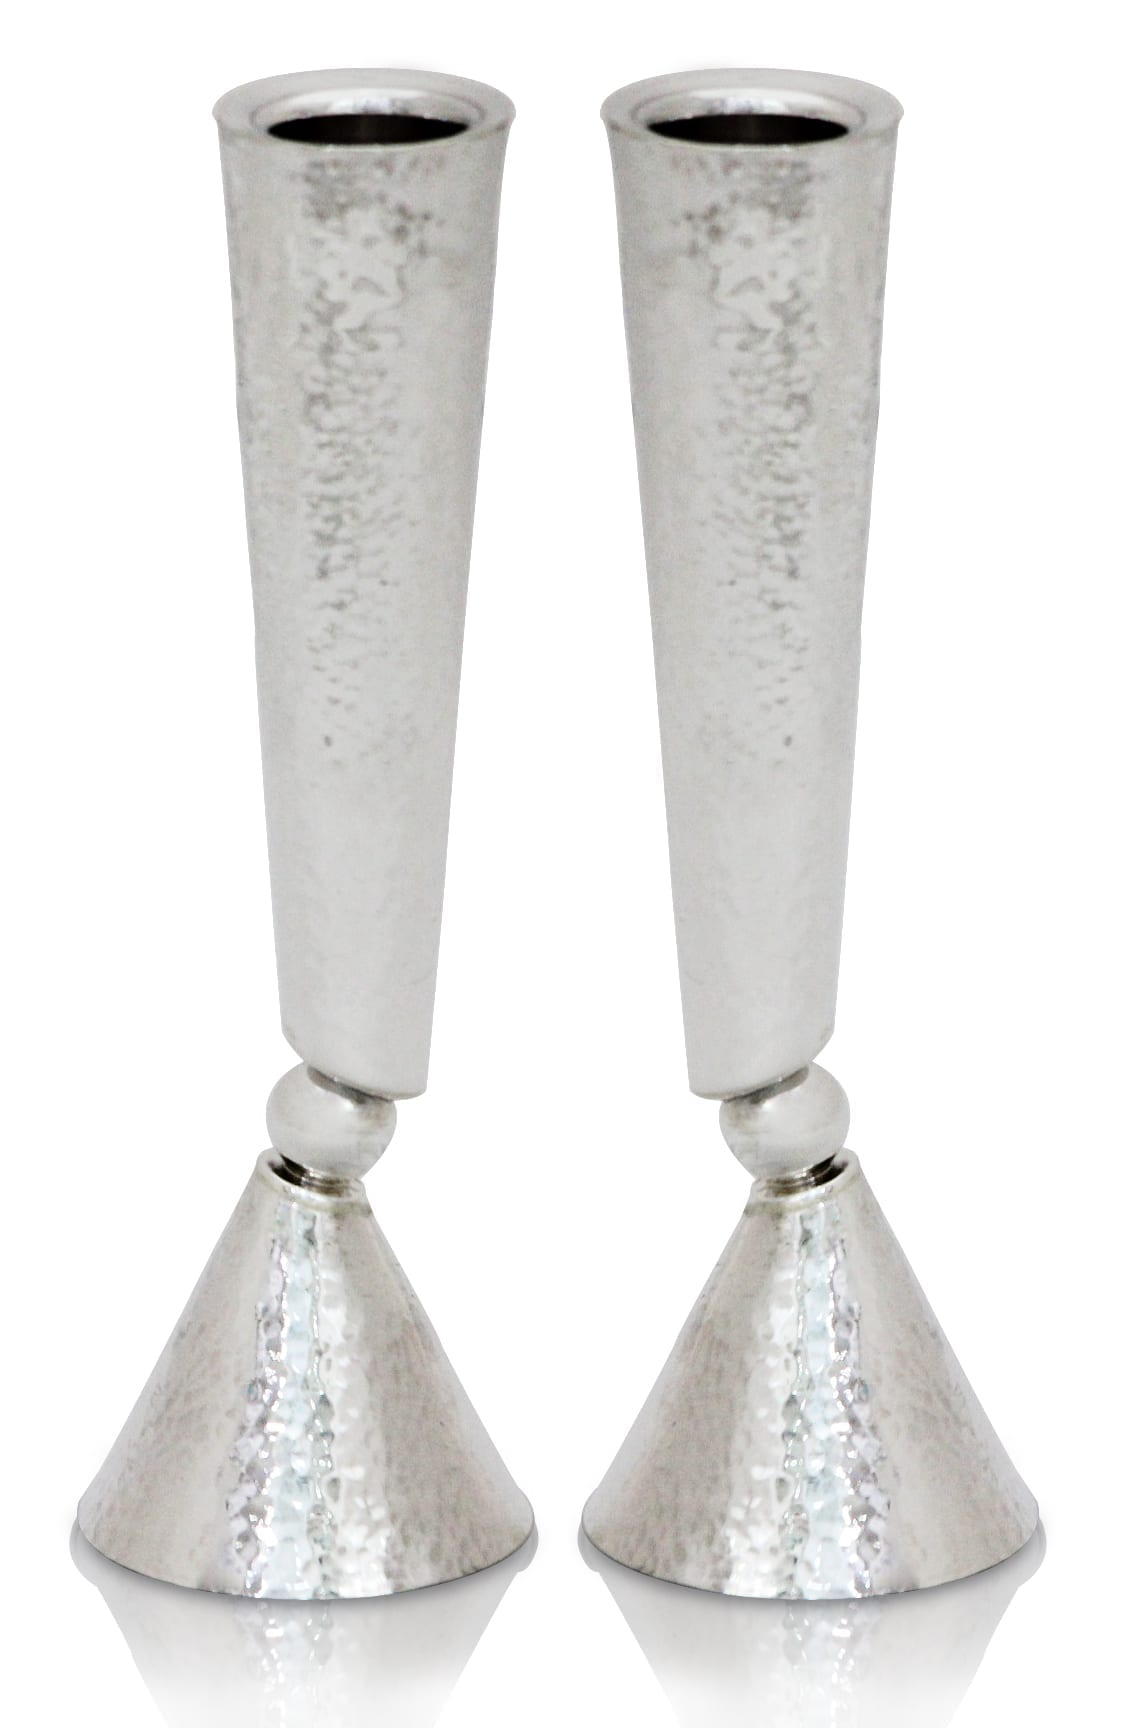 Modern hammered sterling silver candlesticks. Shabbat Judaica made in Israel